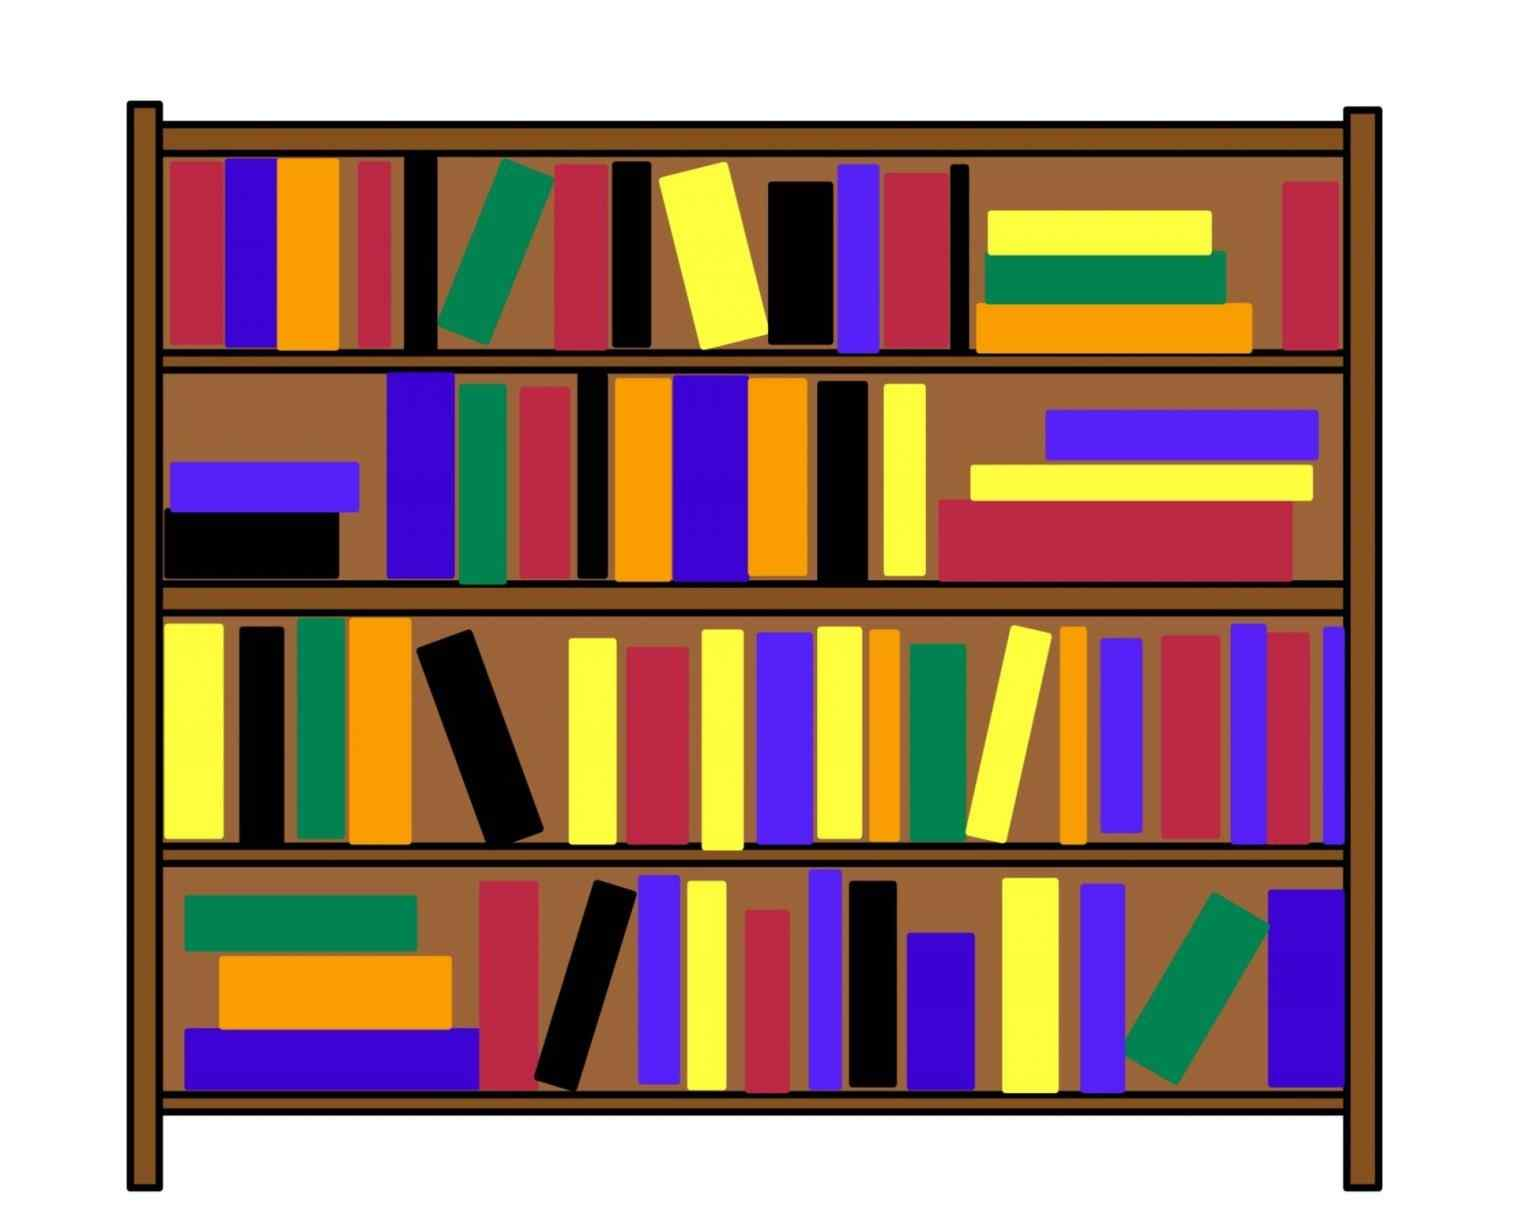 1517x1228 Clipart Png The Wall S And Others Art Wooden Bookcase Wooden